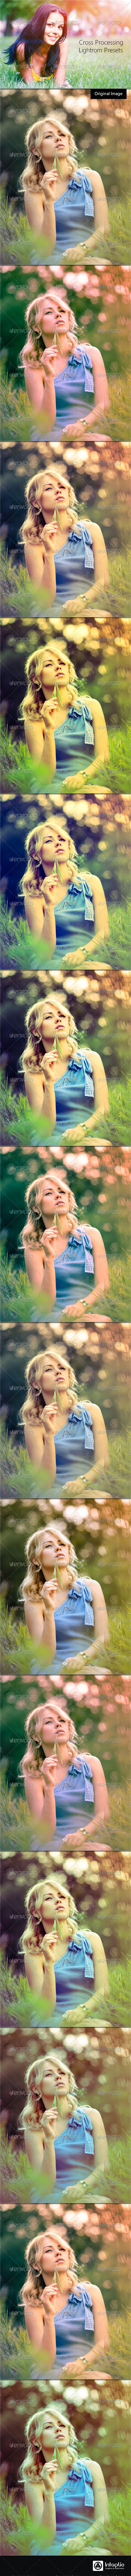 Advanced Cross-Processing Lightroom Presets - Lightroom Presets Add-ons